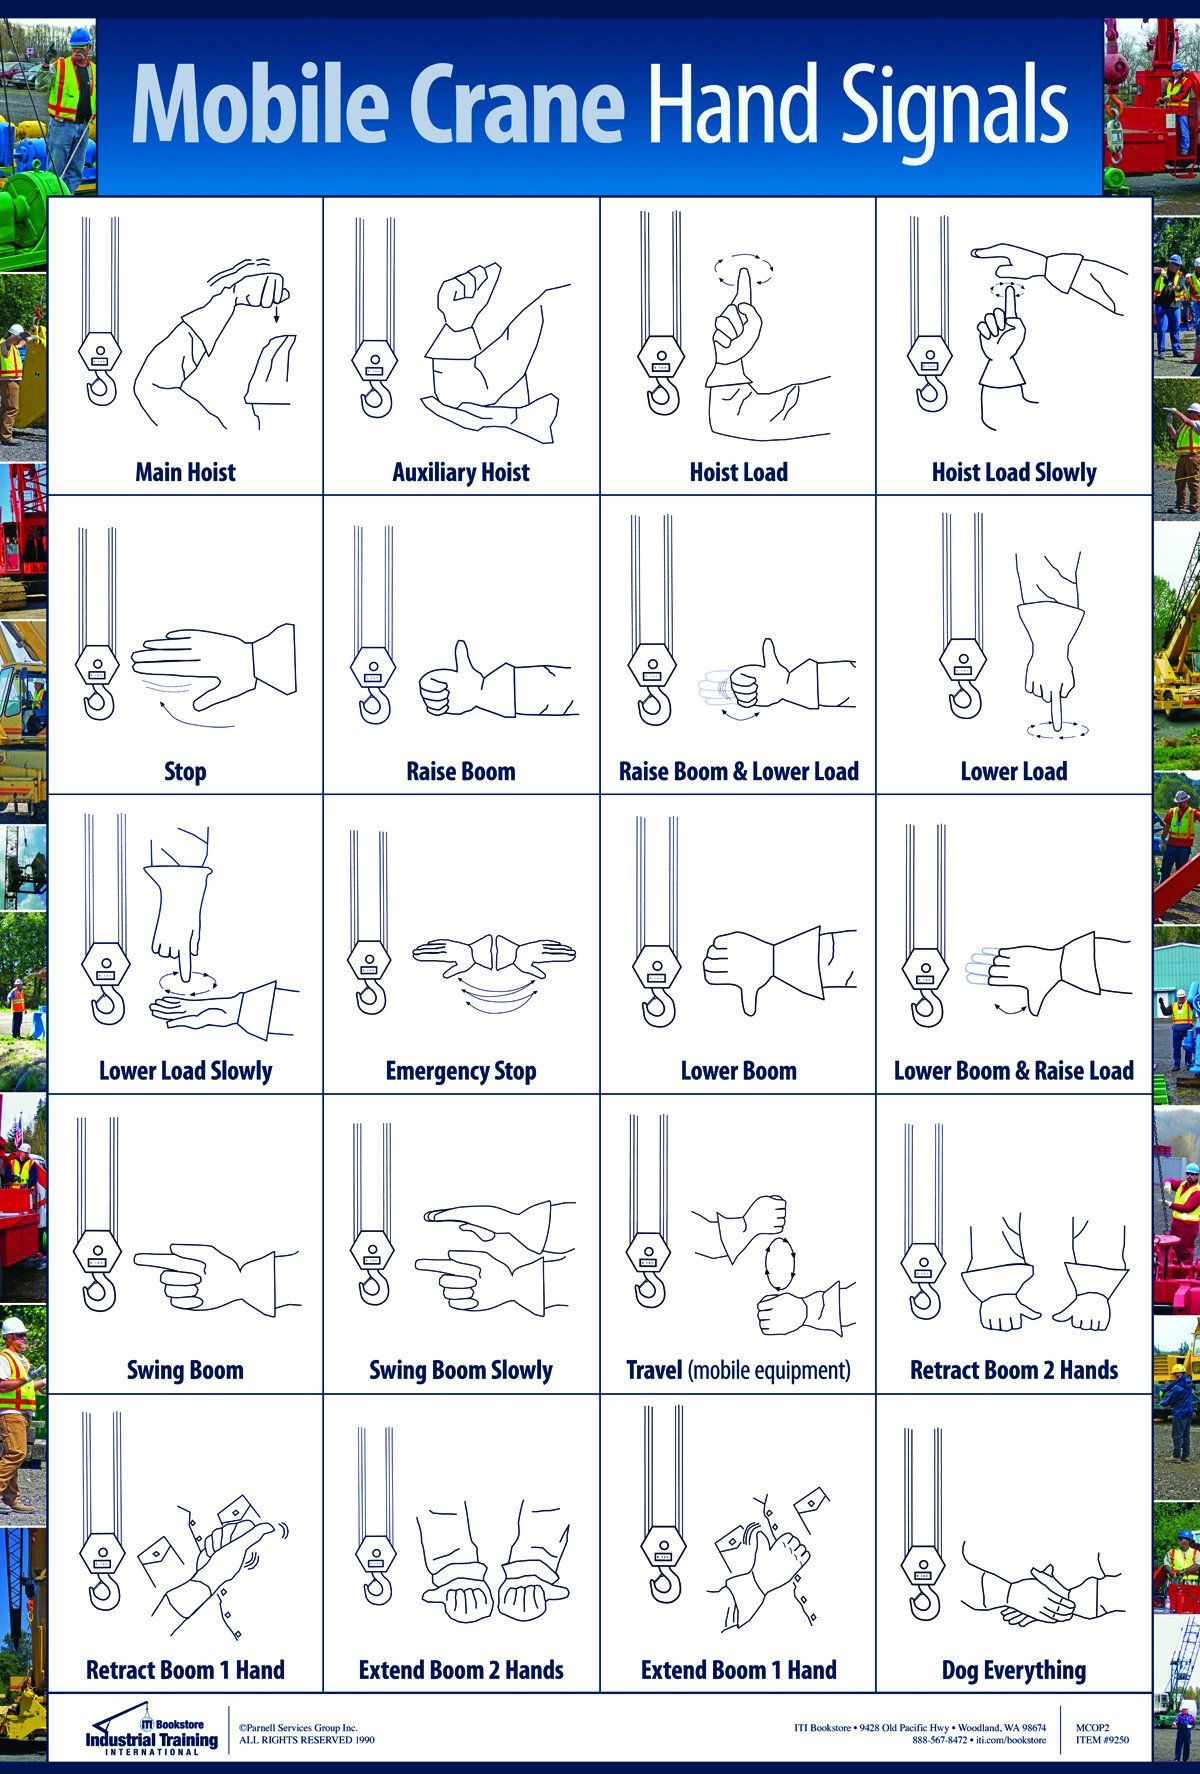 Mobile Crane Hand Signals Poster Hand Signals Crane Safety Workplace Safety Slogans